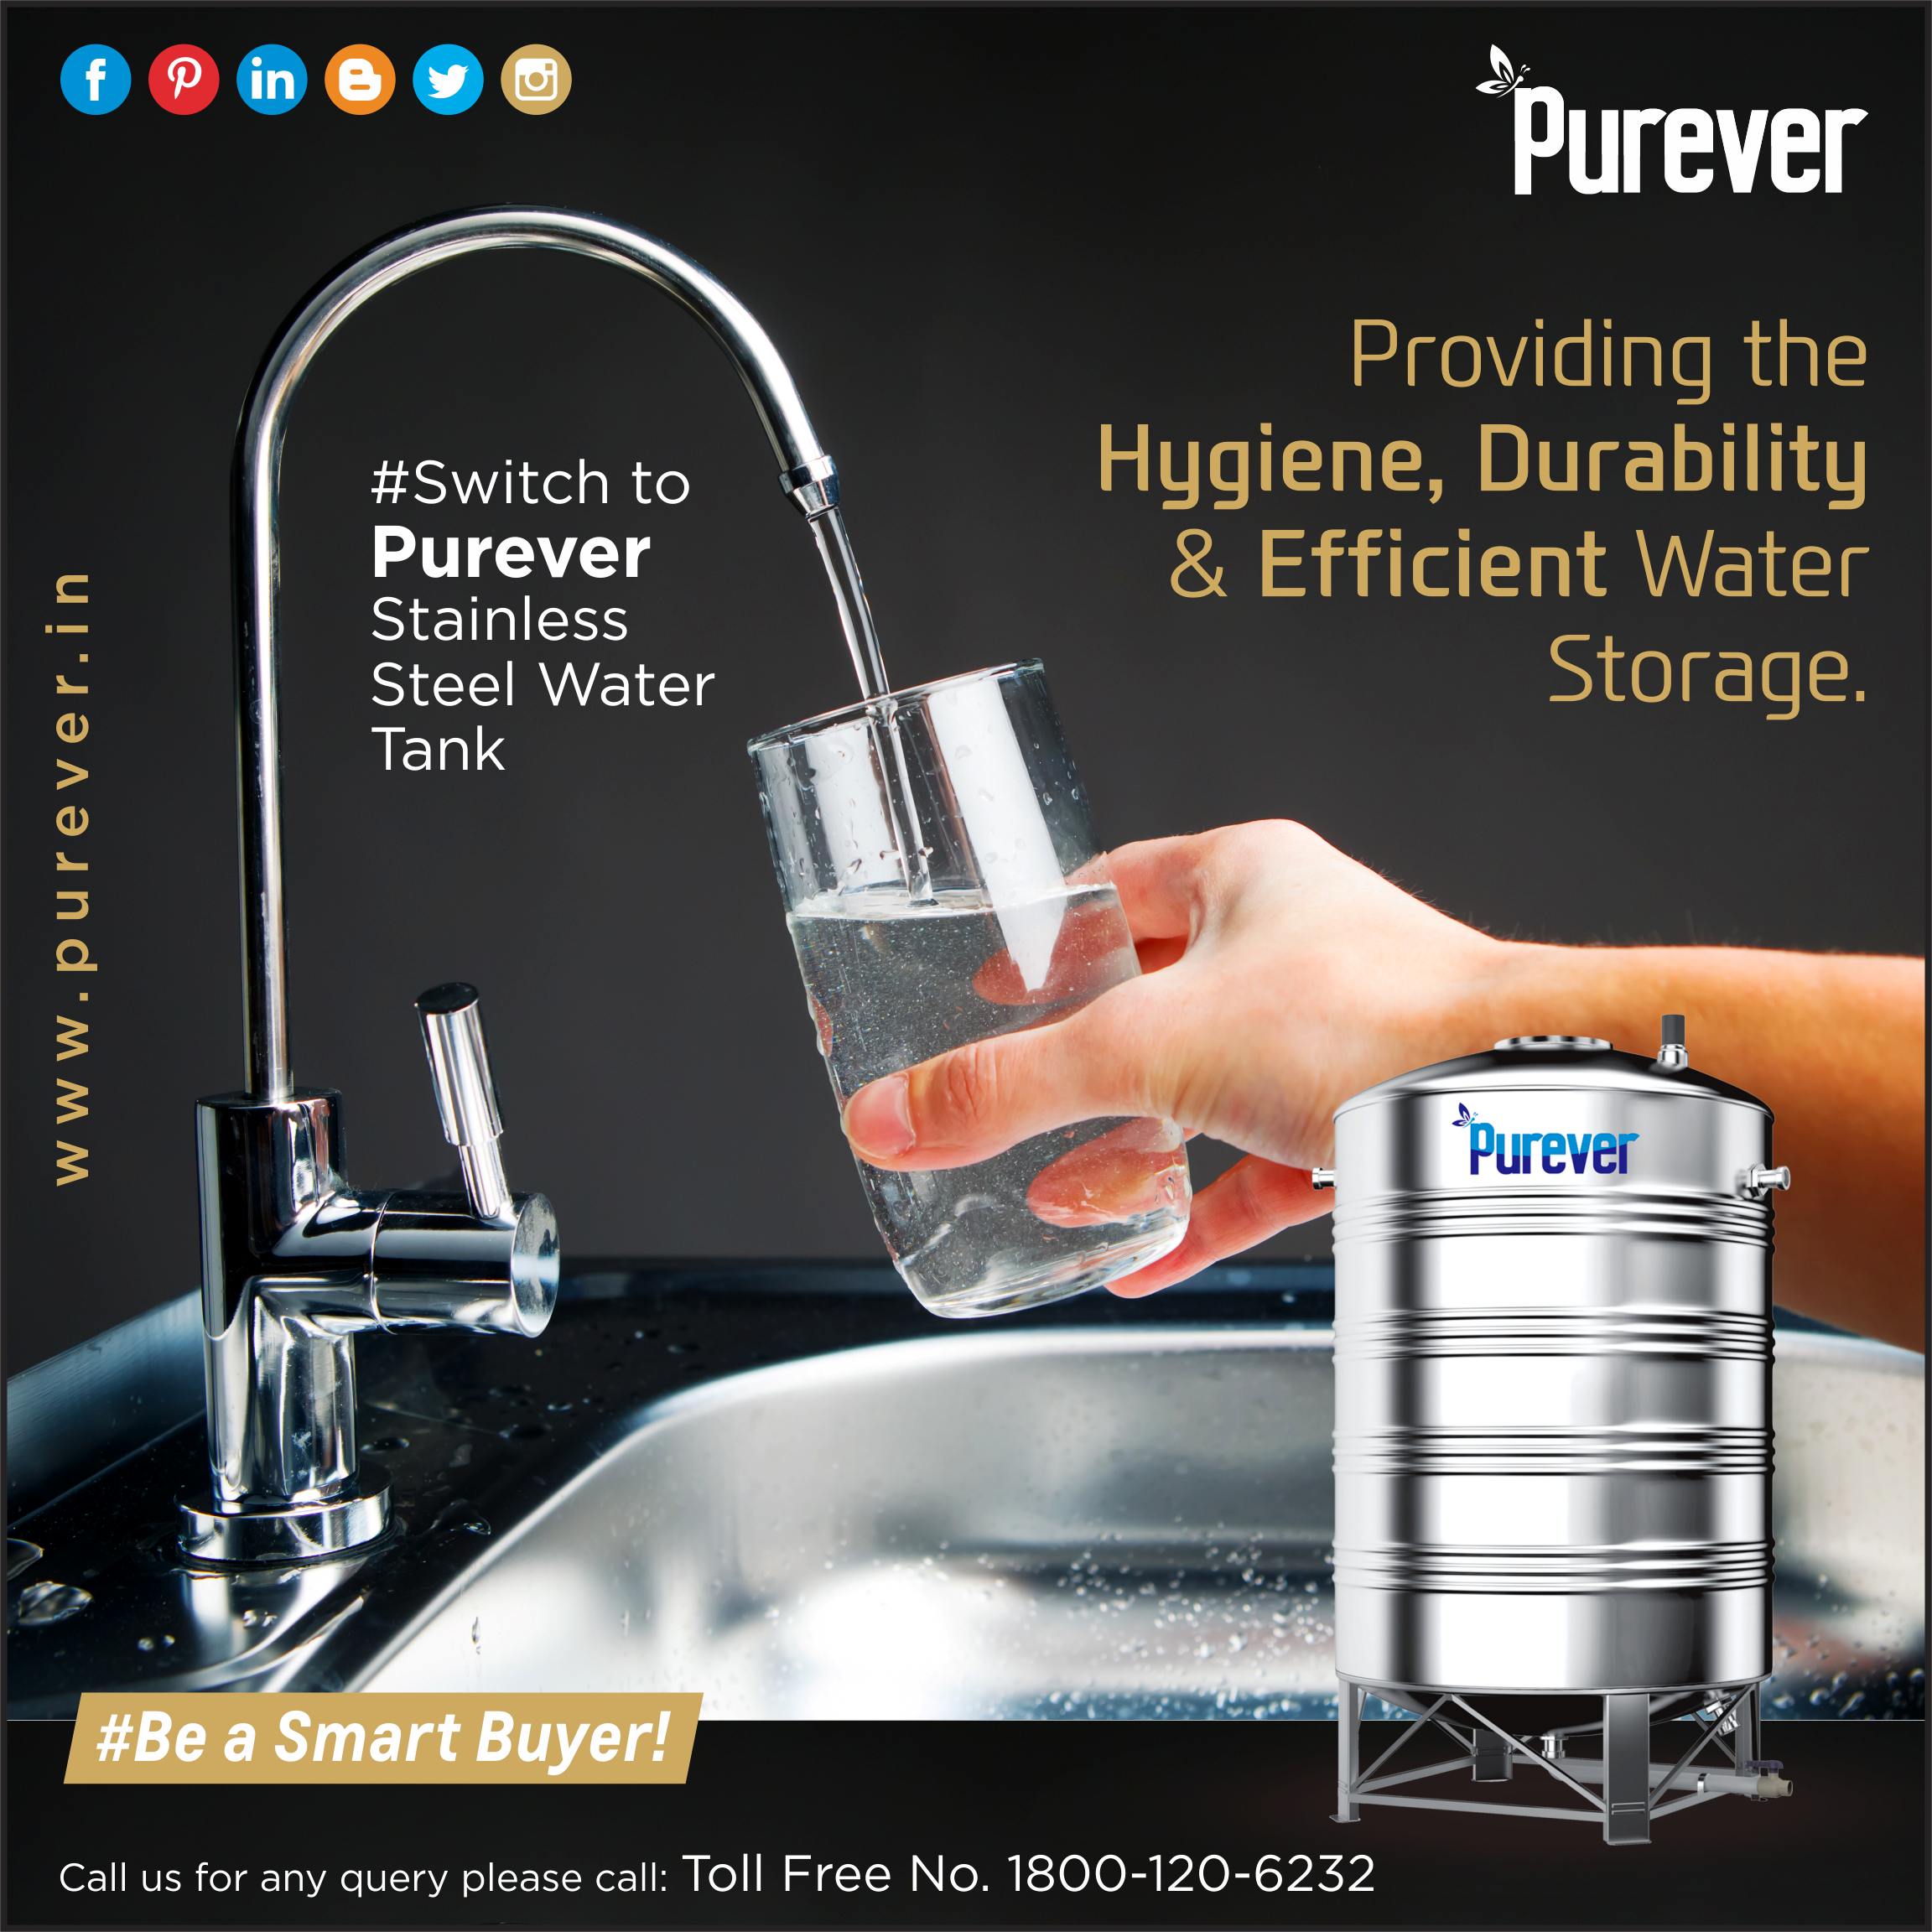 Purever Stainless Steel Water Tanks Providing The Hygiene Durability Efficient Water Storage Solutions 1800 120 62 Steel Water Tanks Water Tank Steel Water